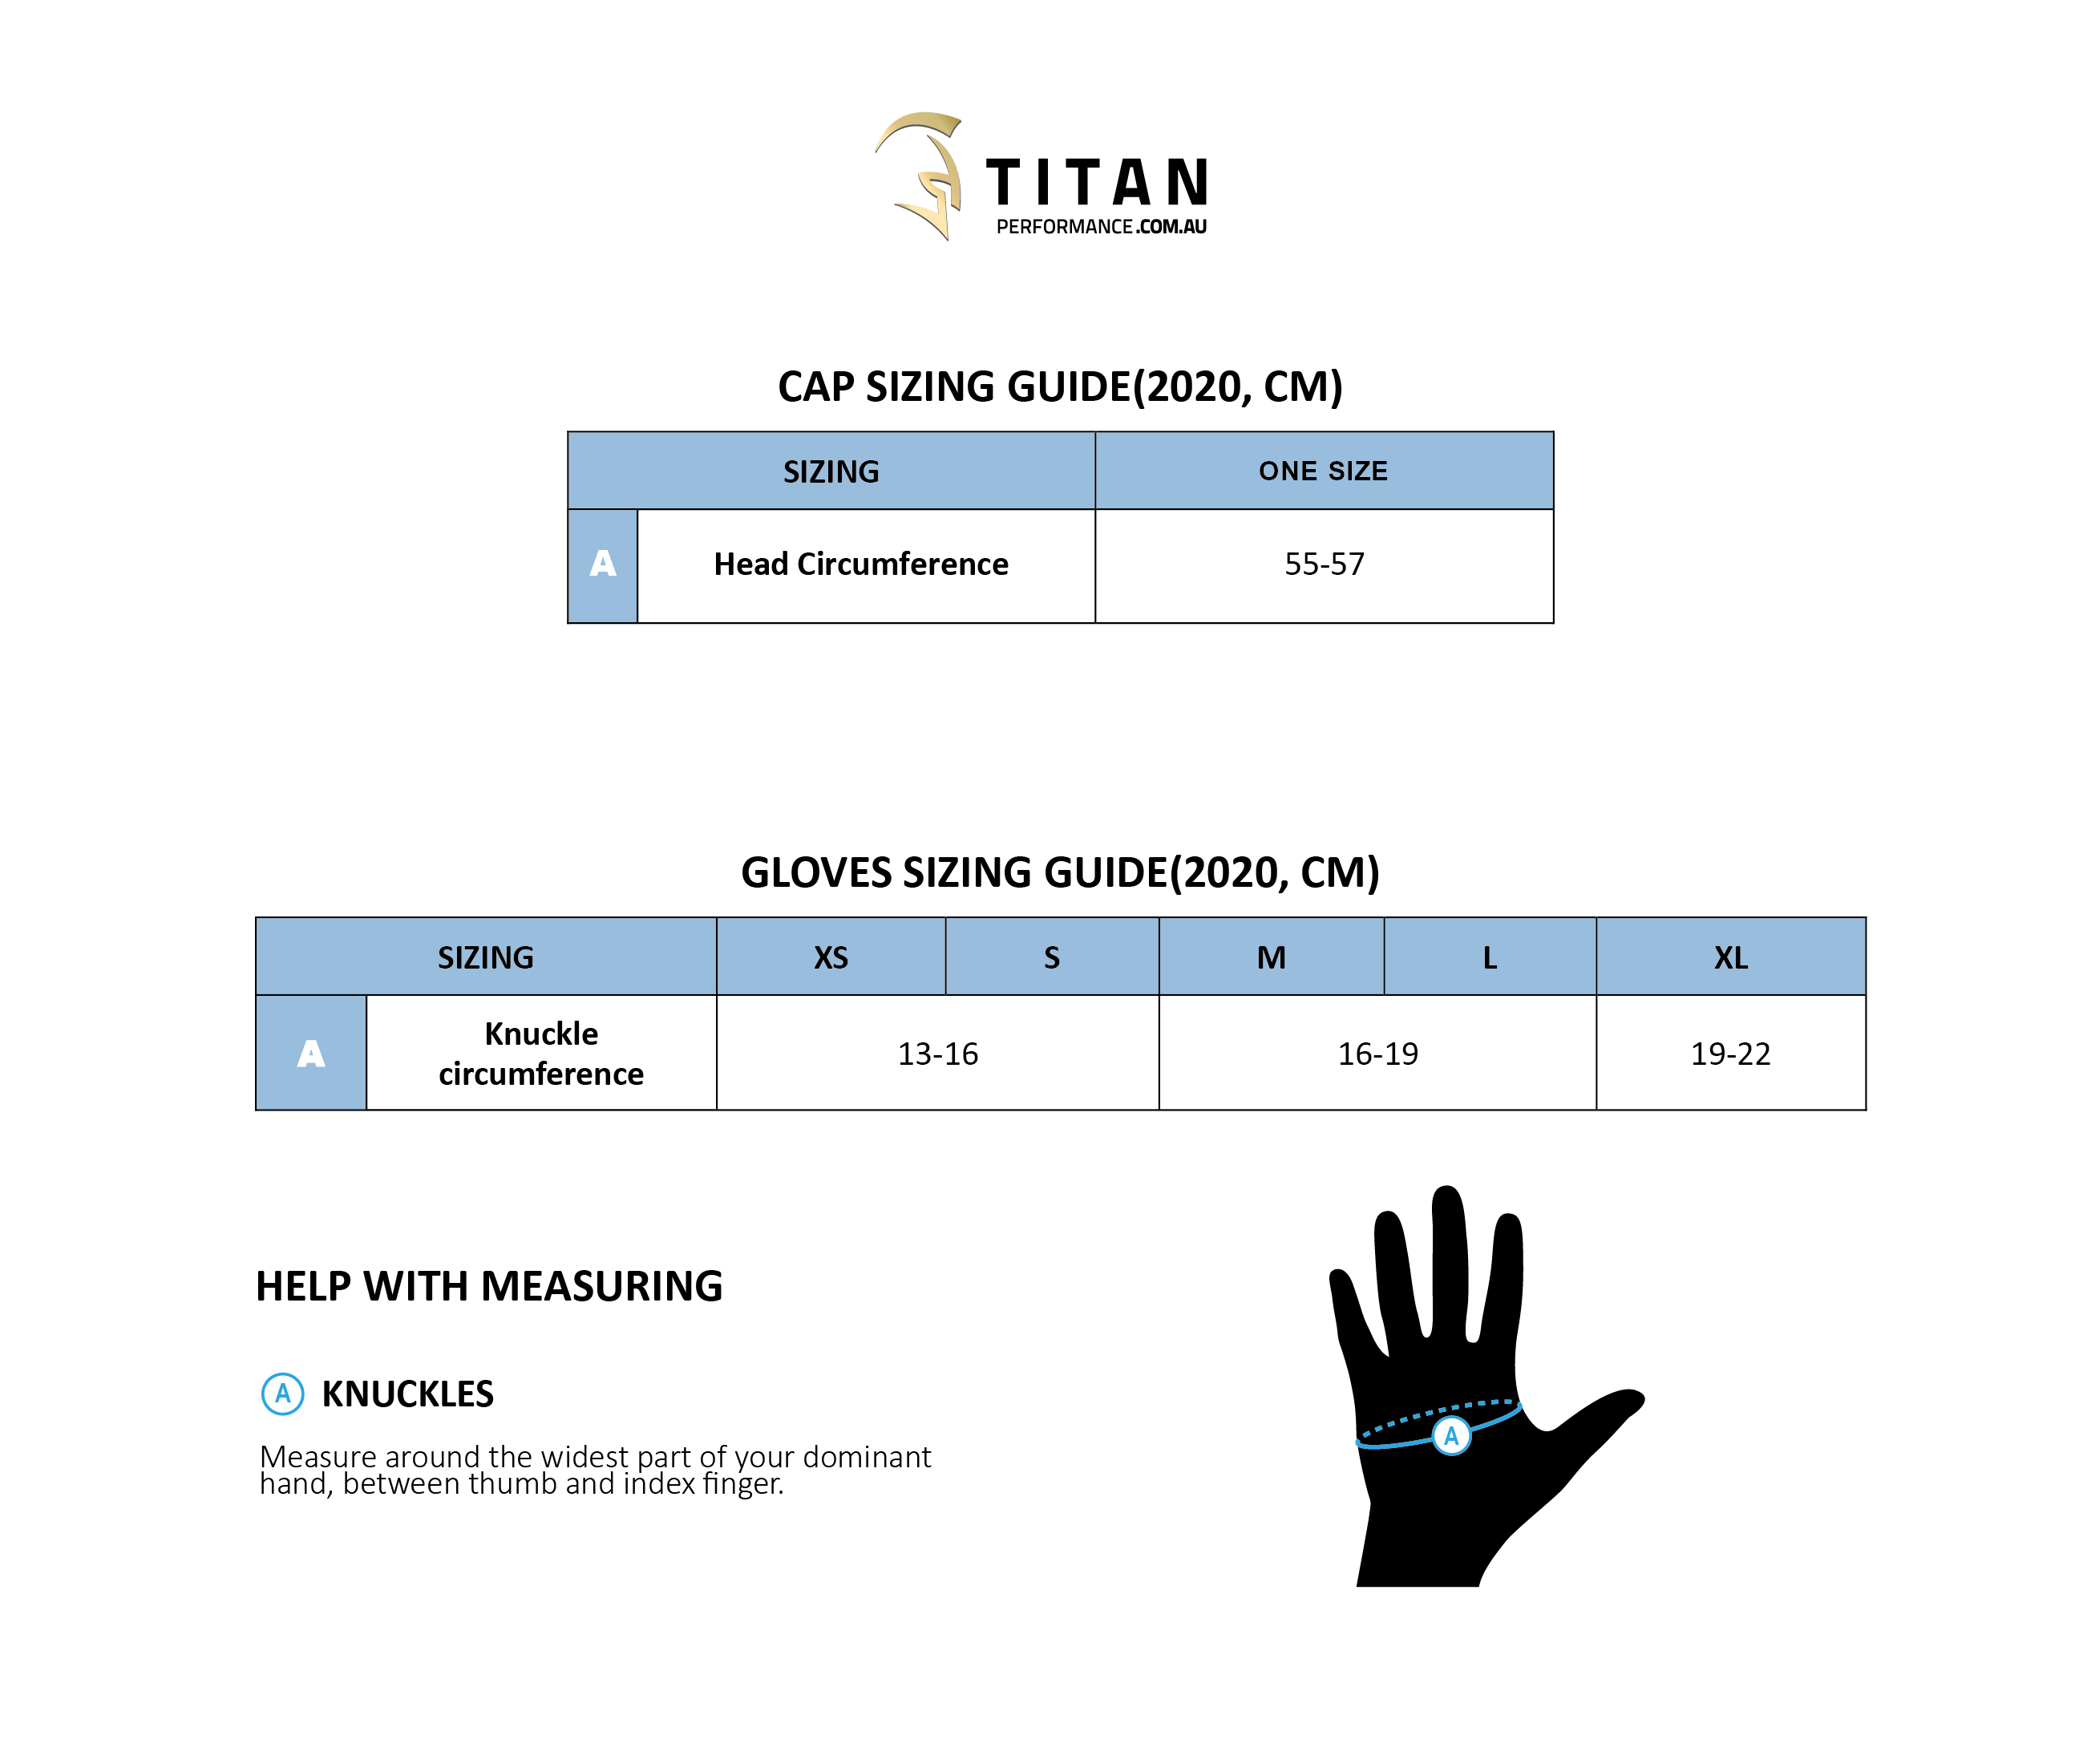 Accessories Sizing Guide